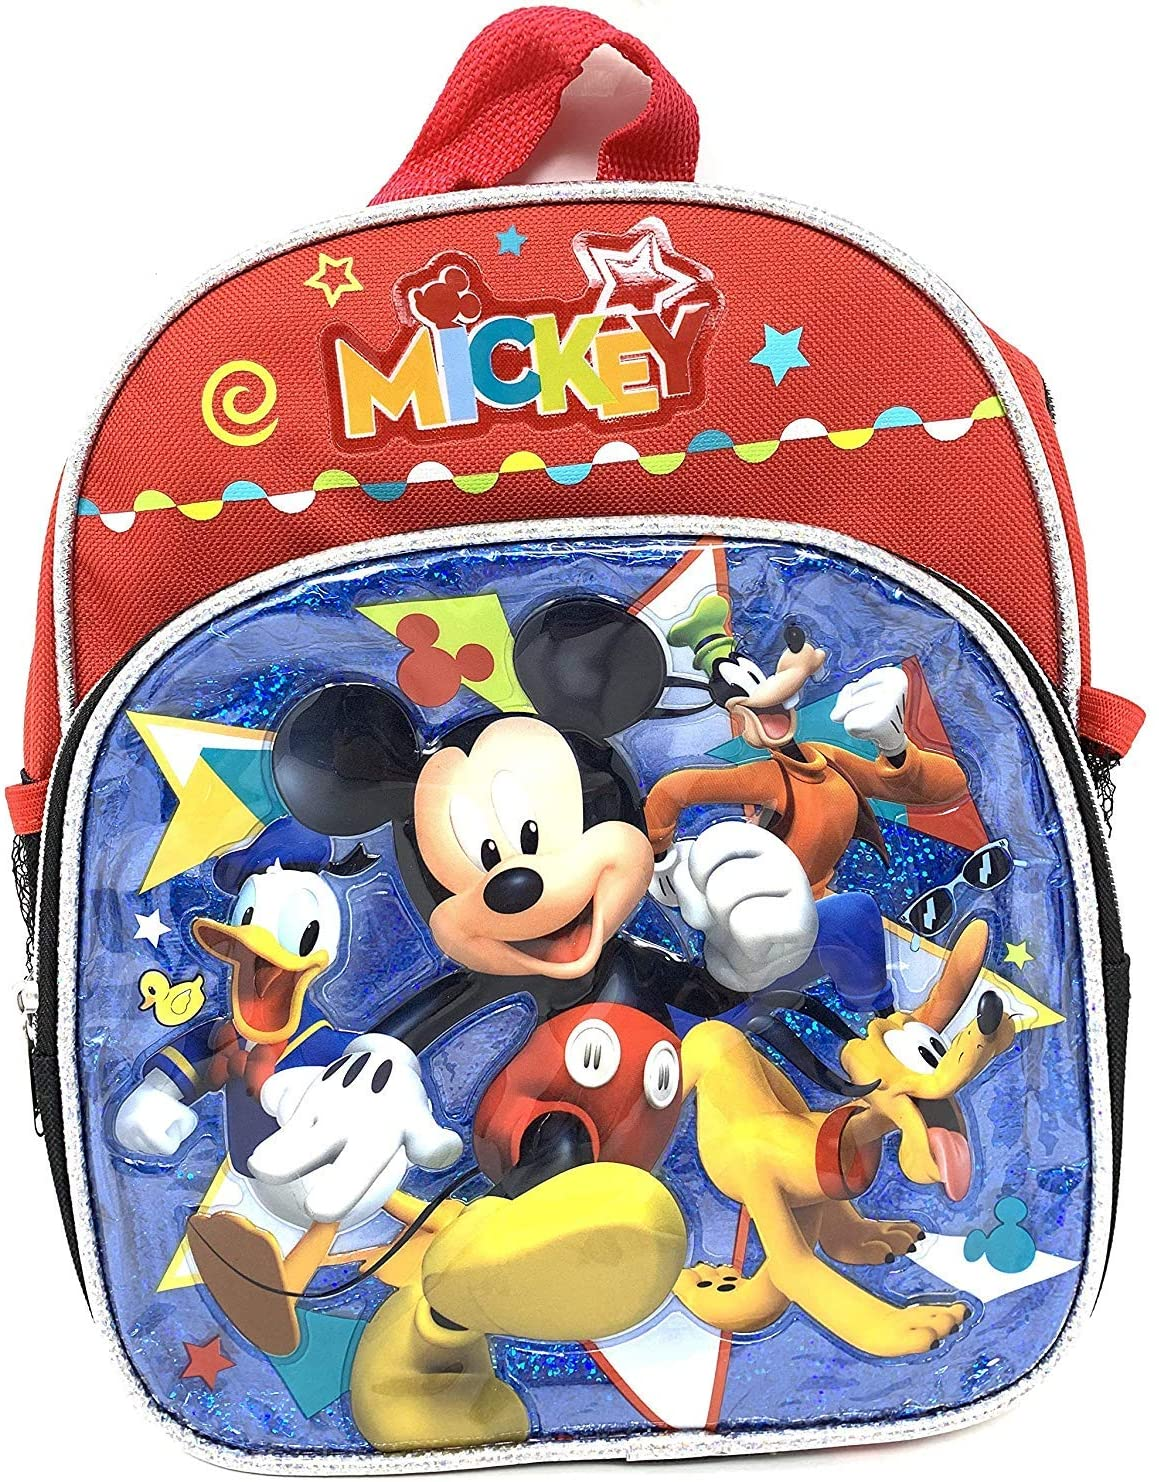 "Disney Mickey Mouse w/ Friends 10"" Toddler X-Small Backpack"